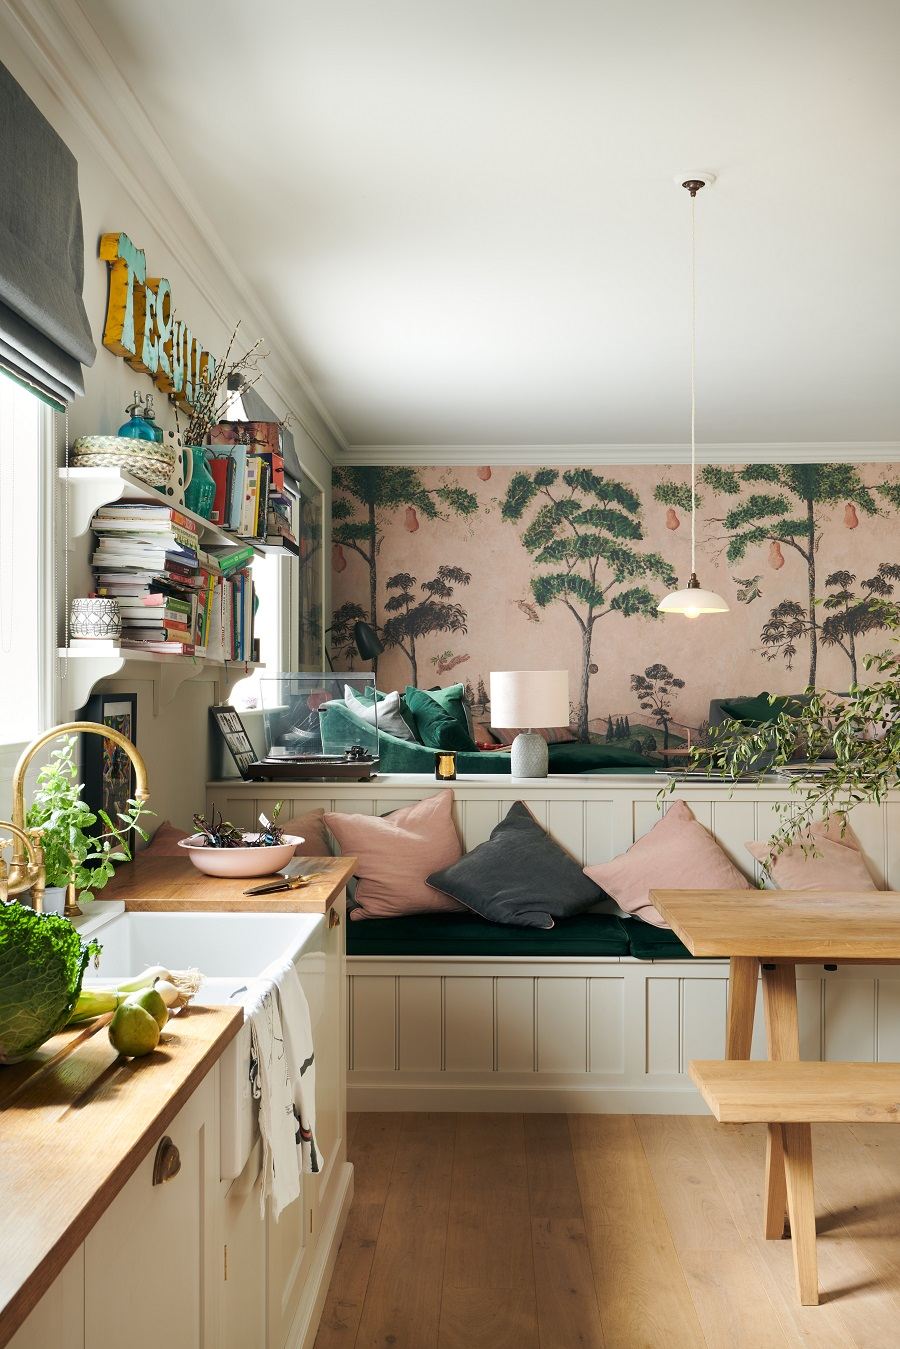 Zoe Ball's Beautiful New Kitchen